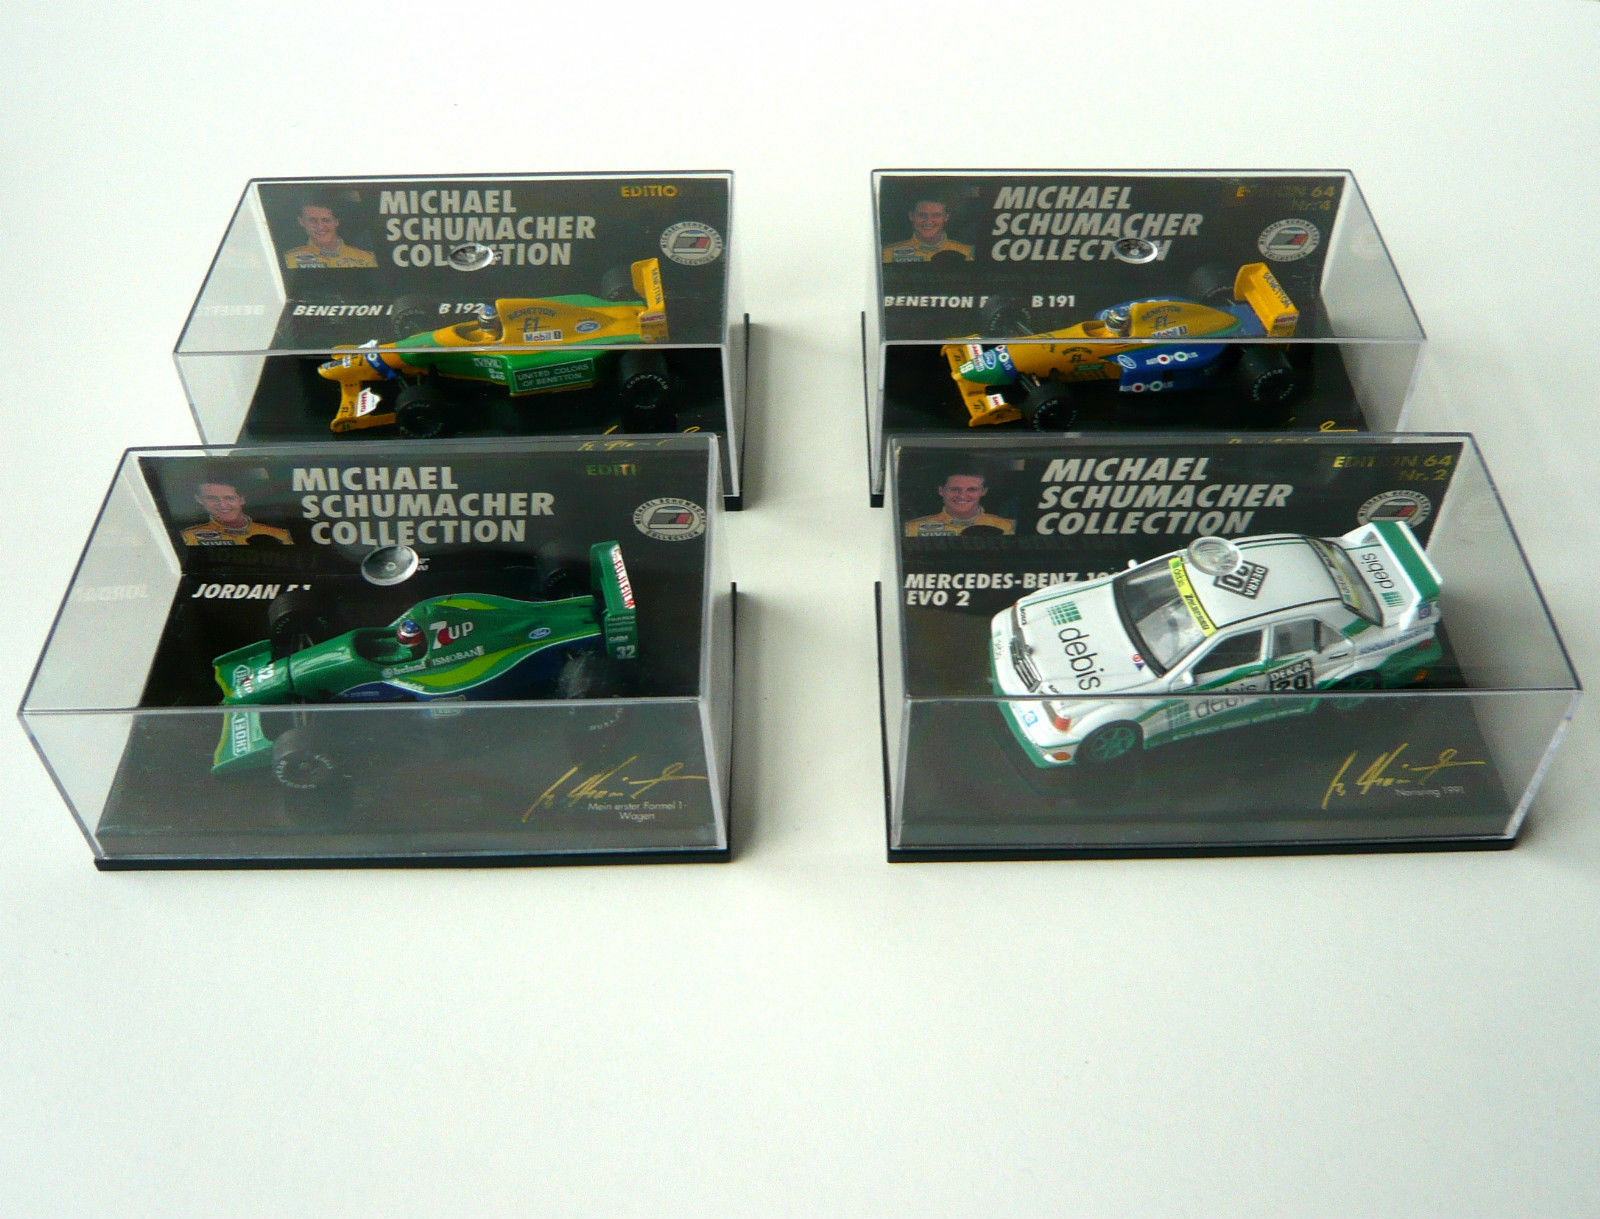 tienda de pescado para la venta MS-Collection jordan f1 benetton ford b191 192 mercedes benz 190e 190e 190e evo 2 1 64  de moda